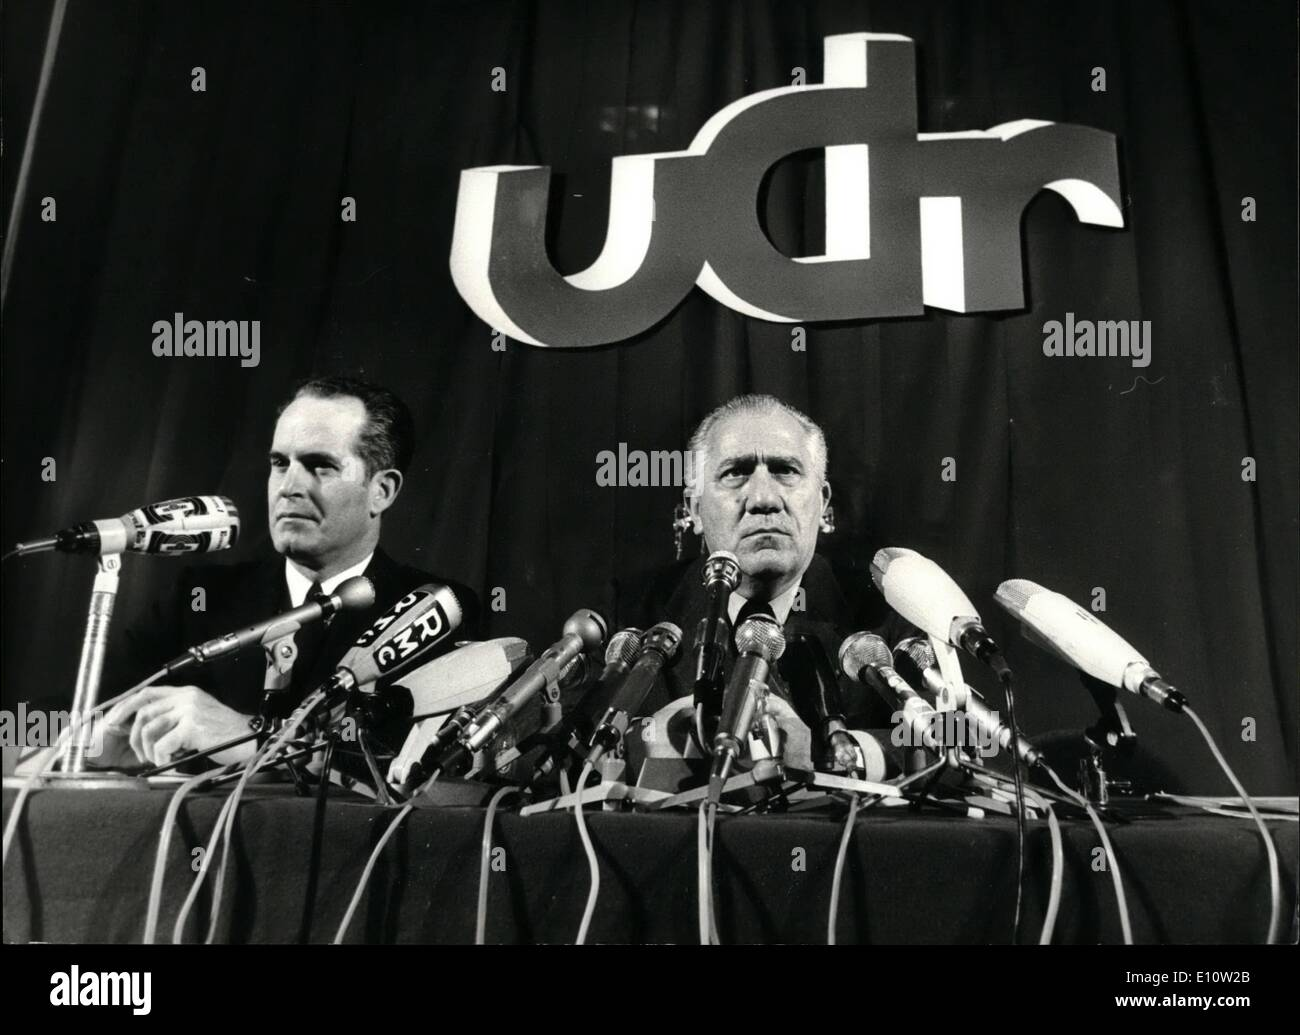 Apr. 04, 1974 - The Union of Democrats for the Republic announced this morning during a press conference that they - Stock Image